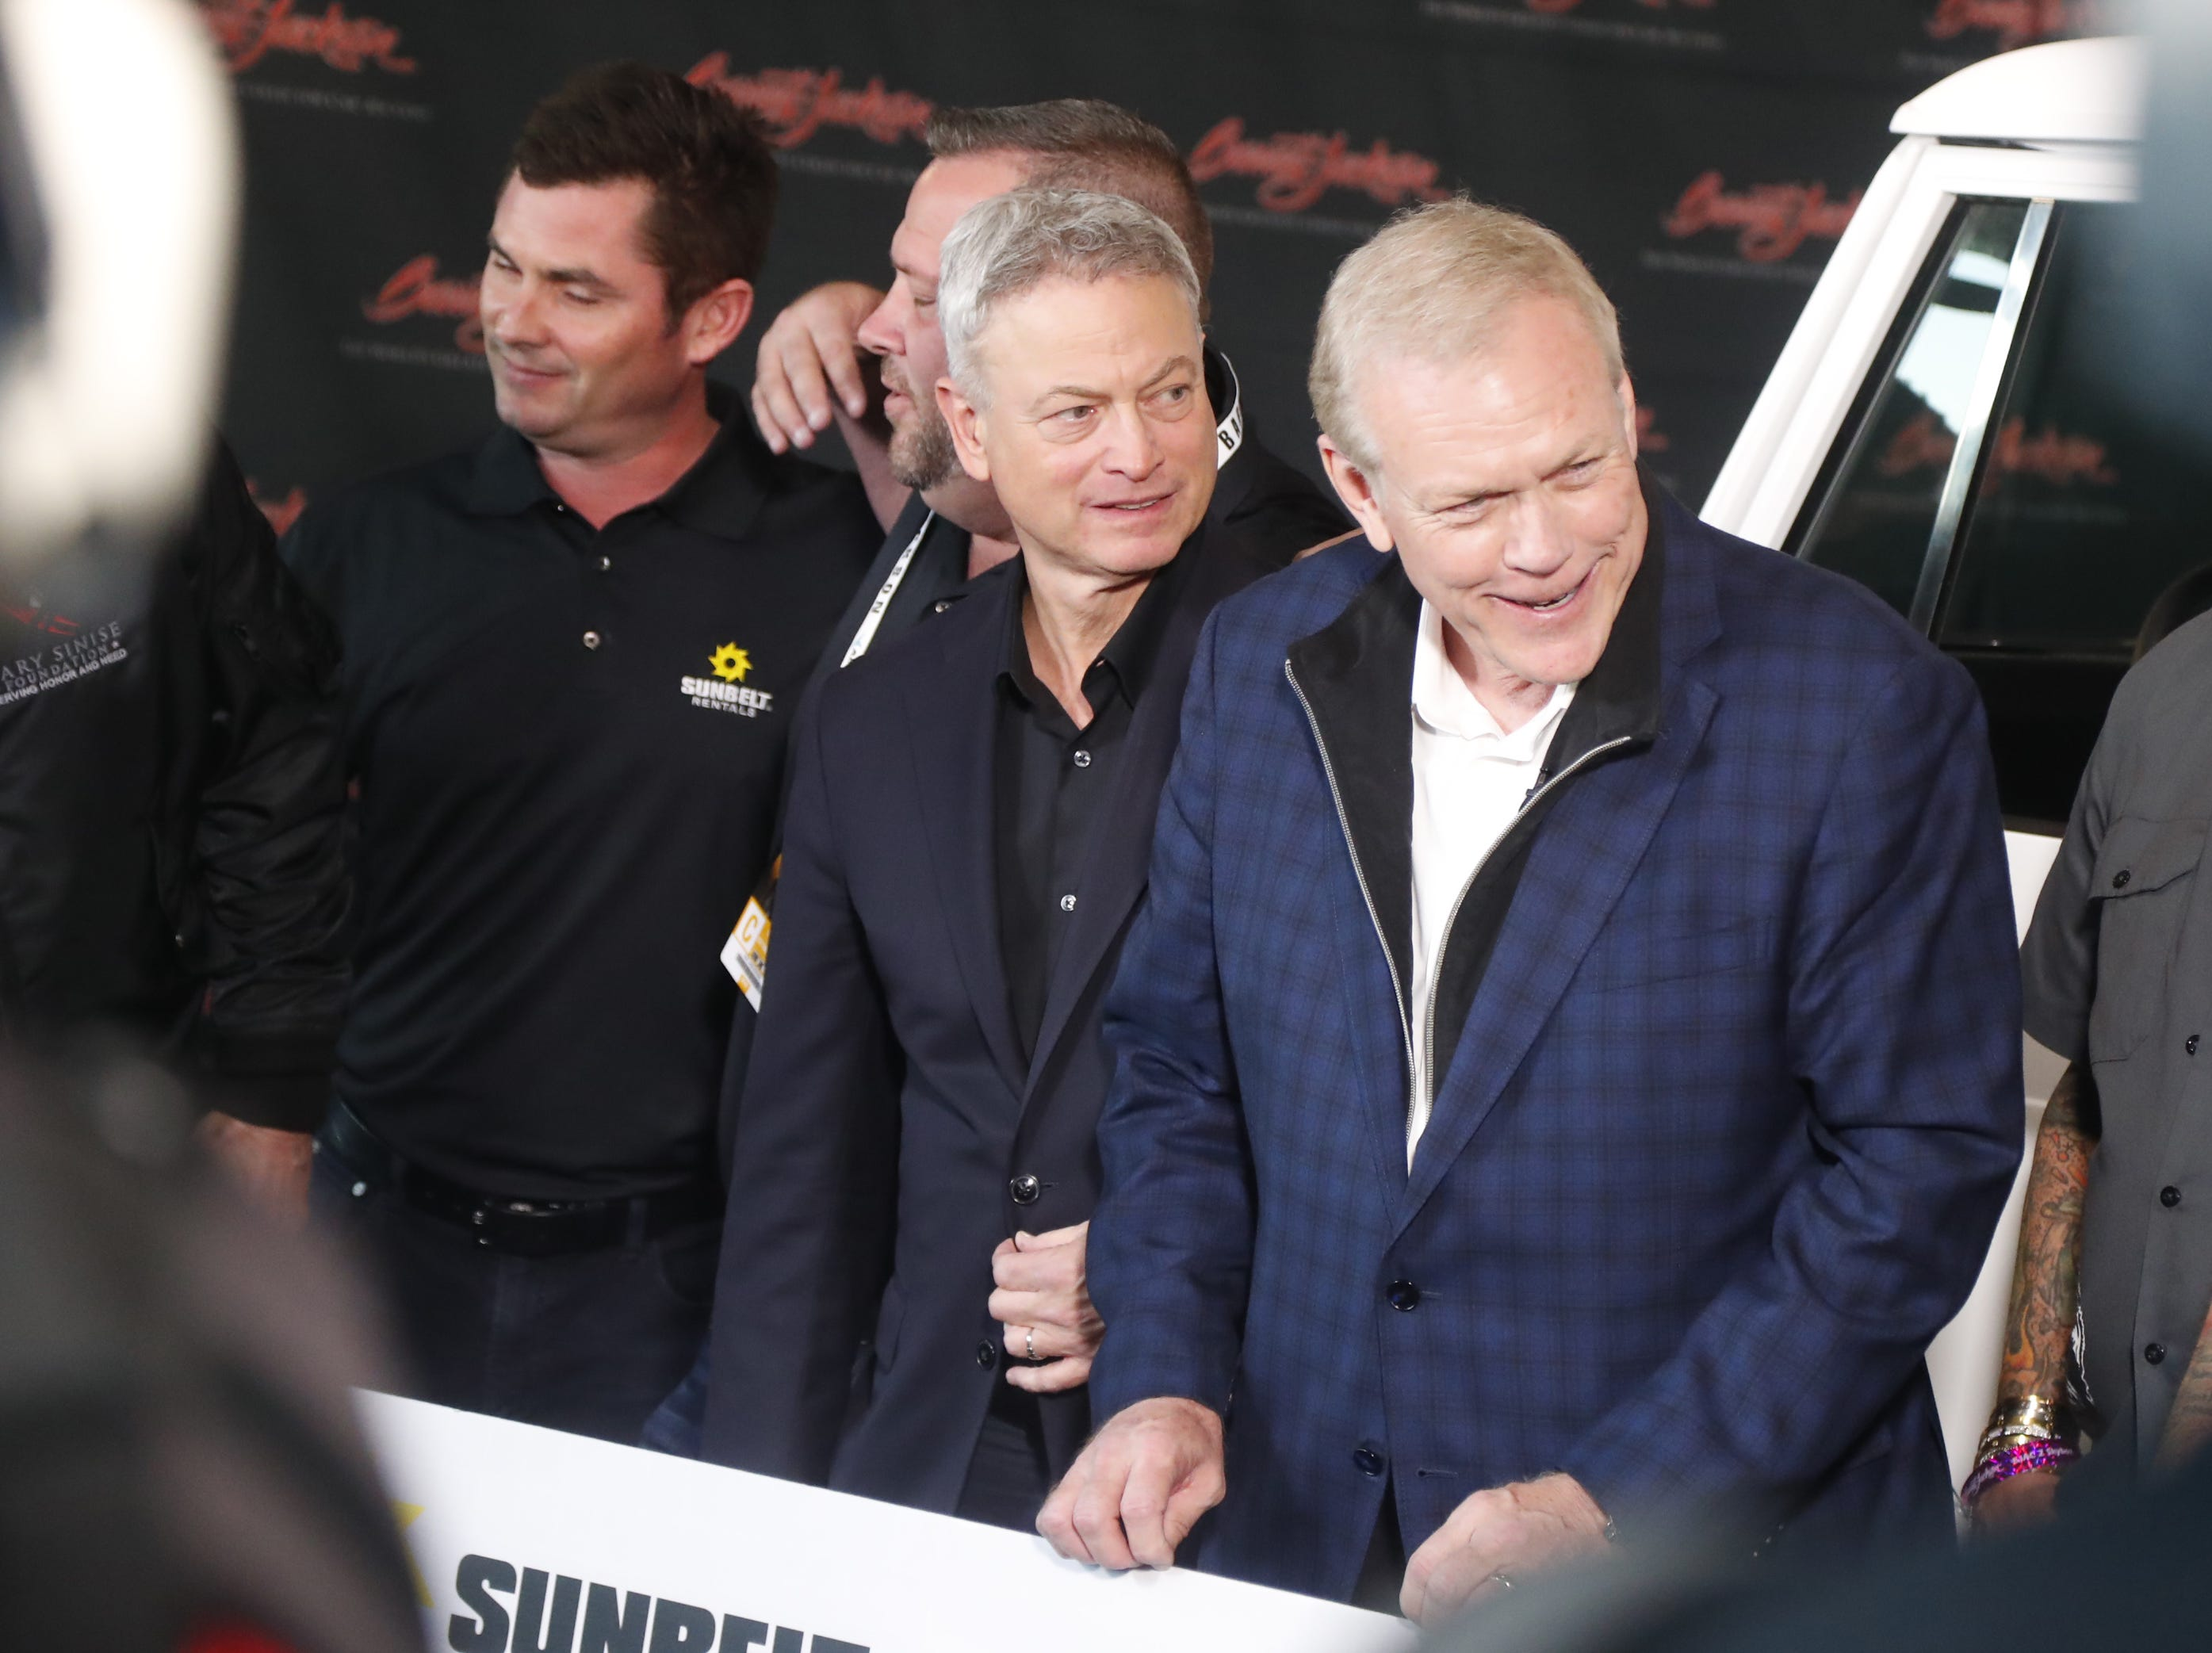 Gary Sinise stands next to Craig Jackson, CEO and chairman of Barrett-Jackson, as people take pictures at the Barrett-Jackson collector-car auction at WestWorld in Scottsdale on Jan. 18, 2019.